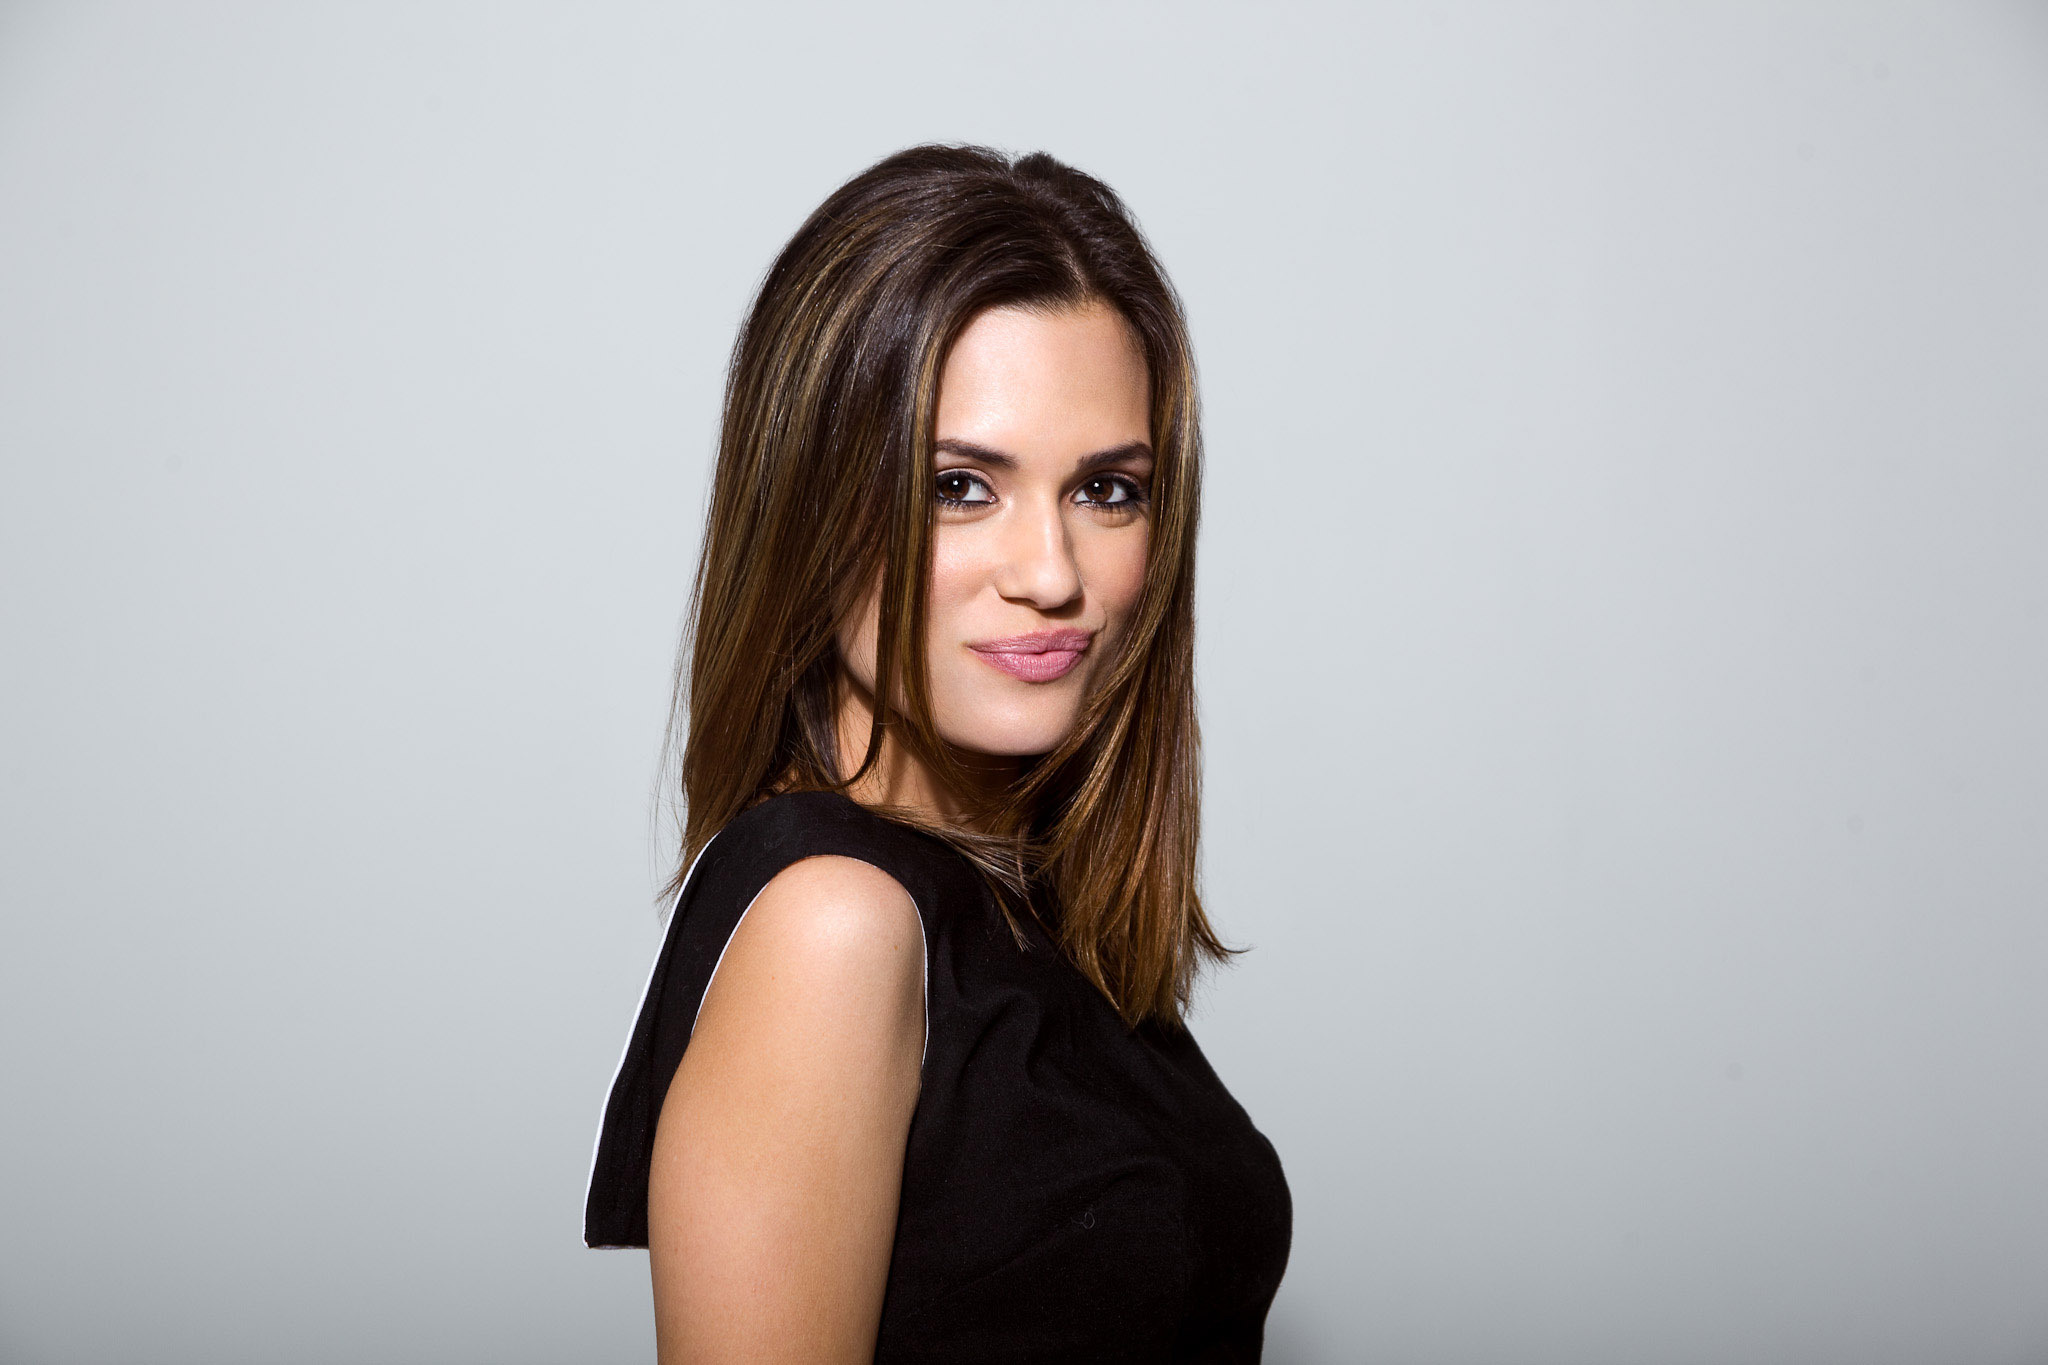 Torrey Devitto Wallpapers Images Photos Pictures Backgrounds